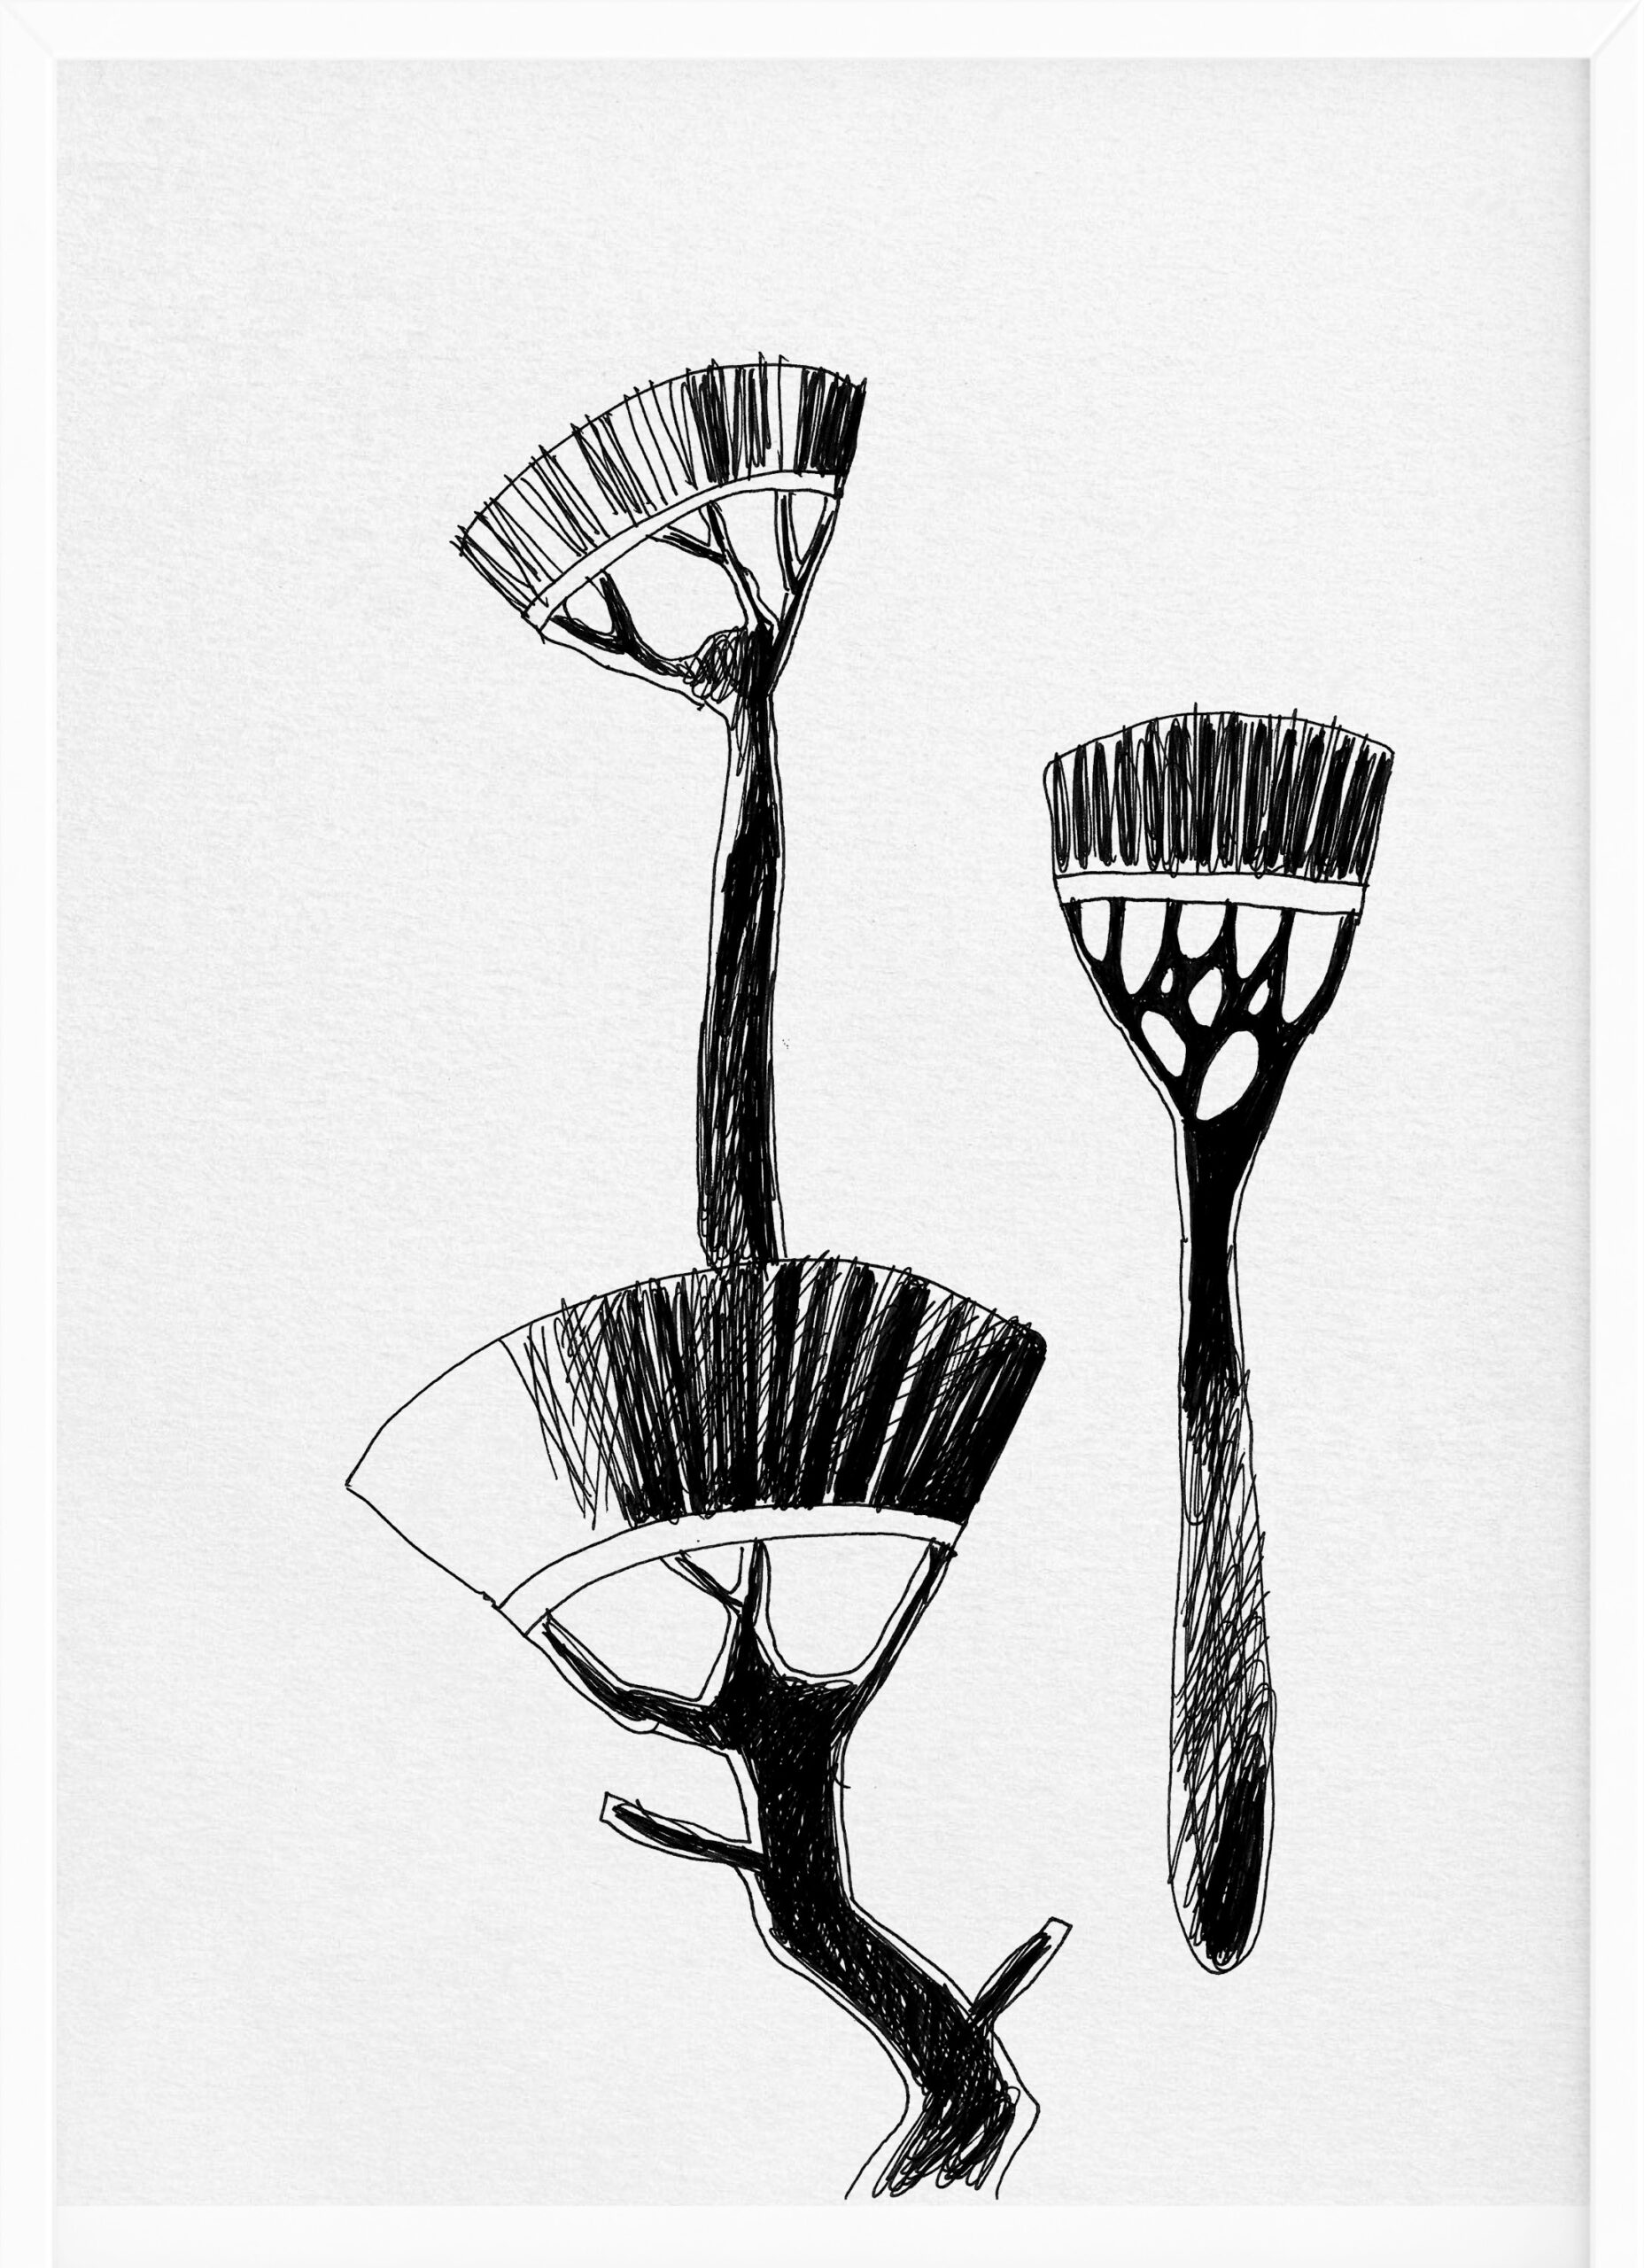 Silence | Drawings | Mario Trimarchi Design